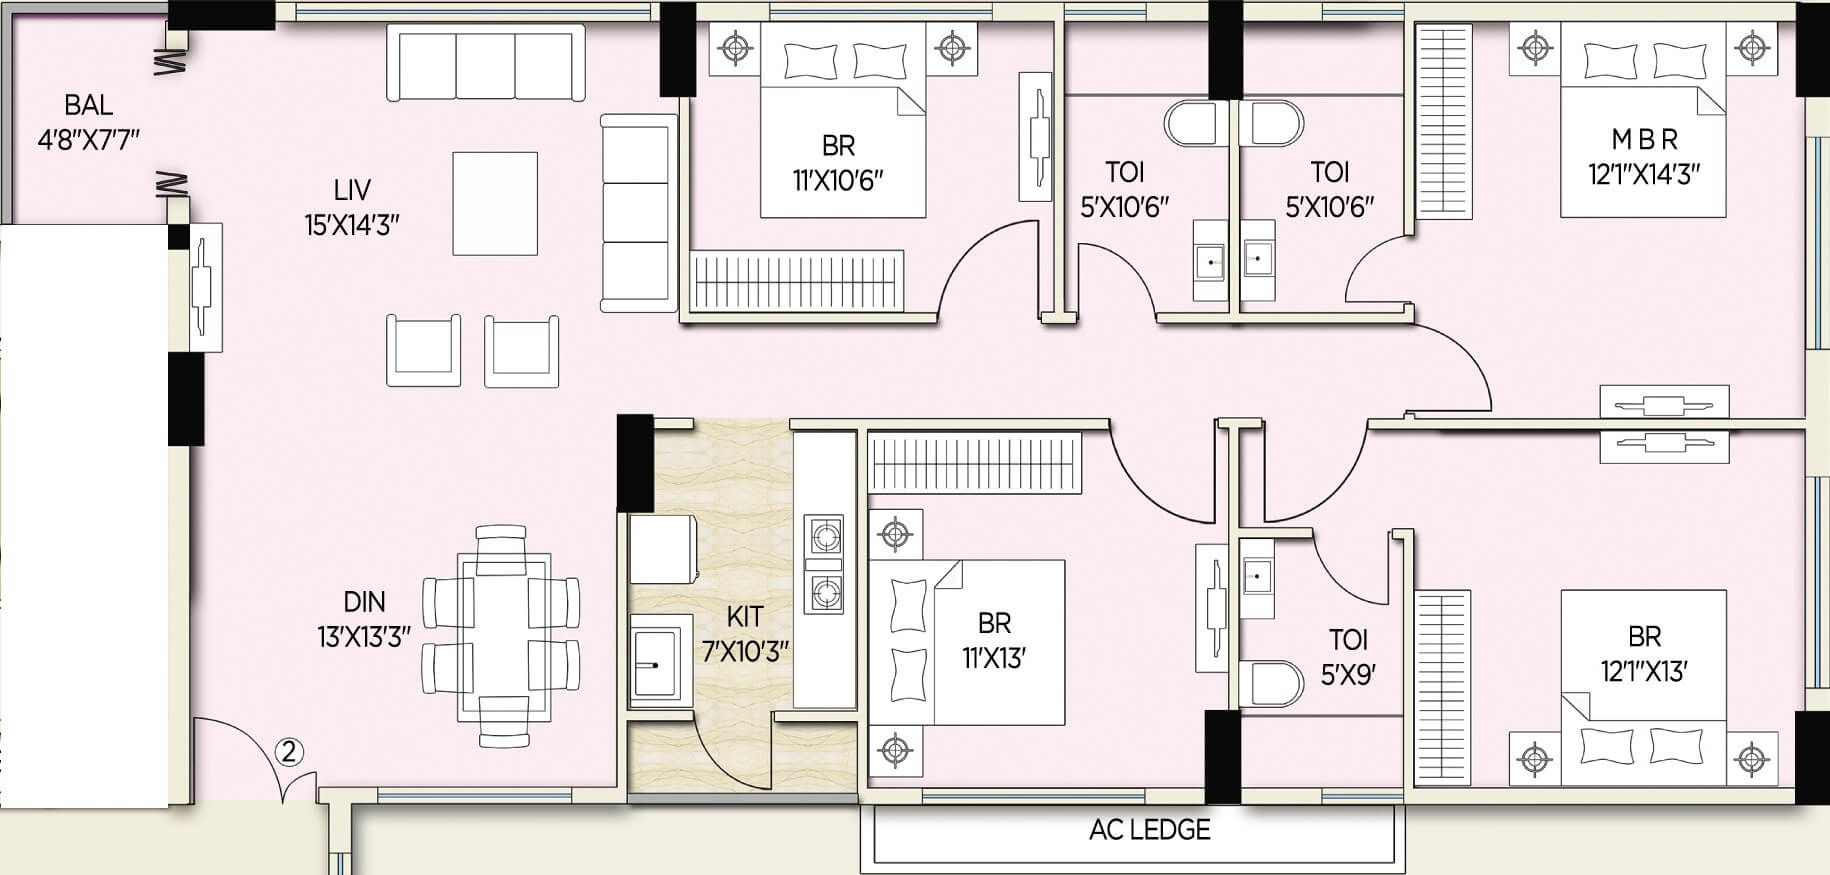 amit realty and shree rsh group ecos apartment 4bhk 2077sqft 1